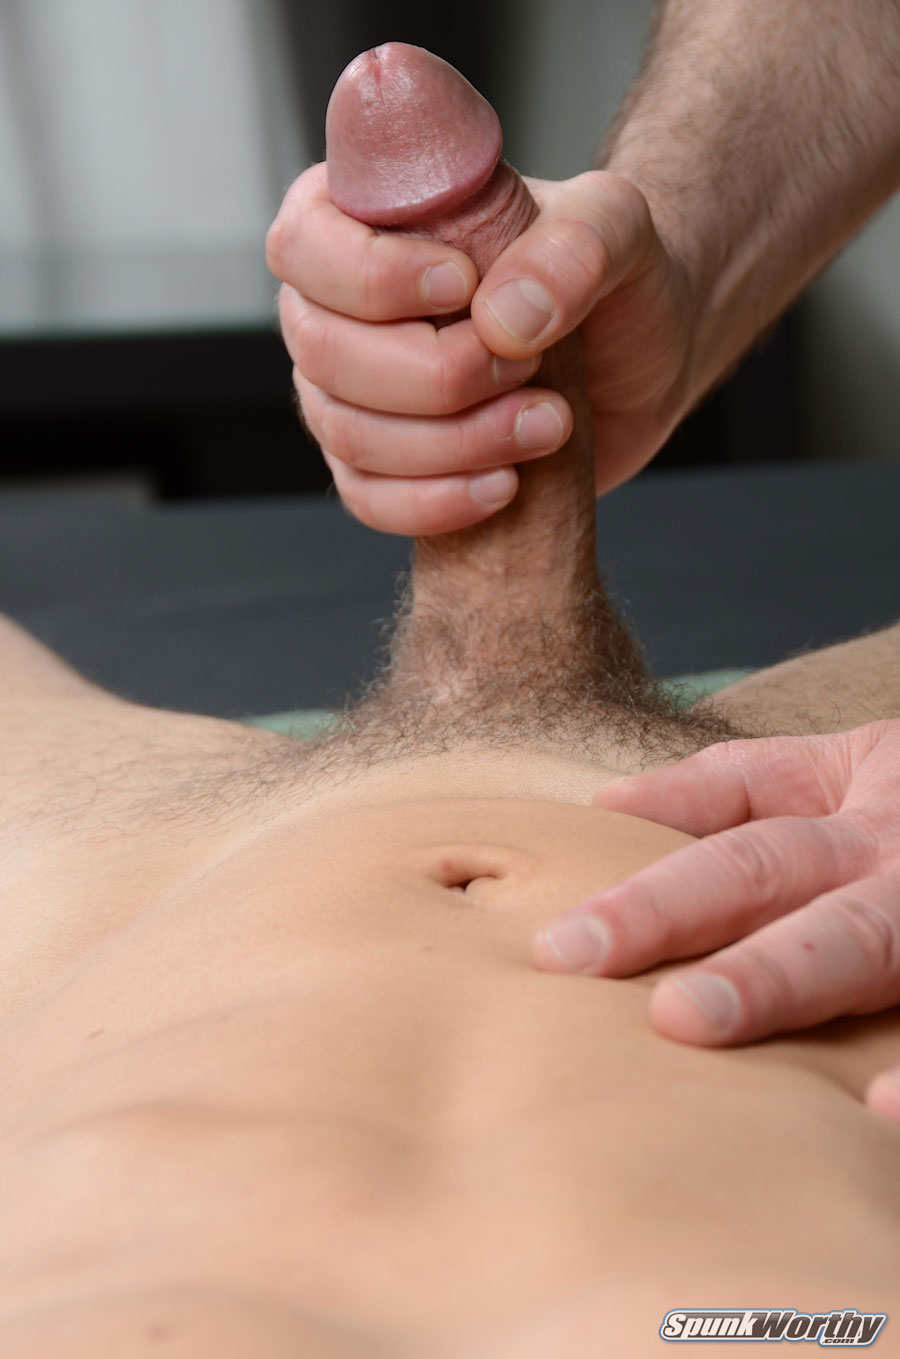 SpunkWorthy Tommy Straight Guys First Blow Job From A Gay Guy Massage Amateur Gay Porn 15